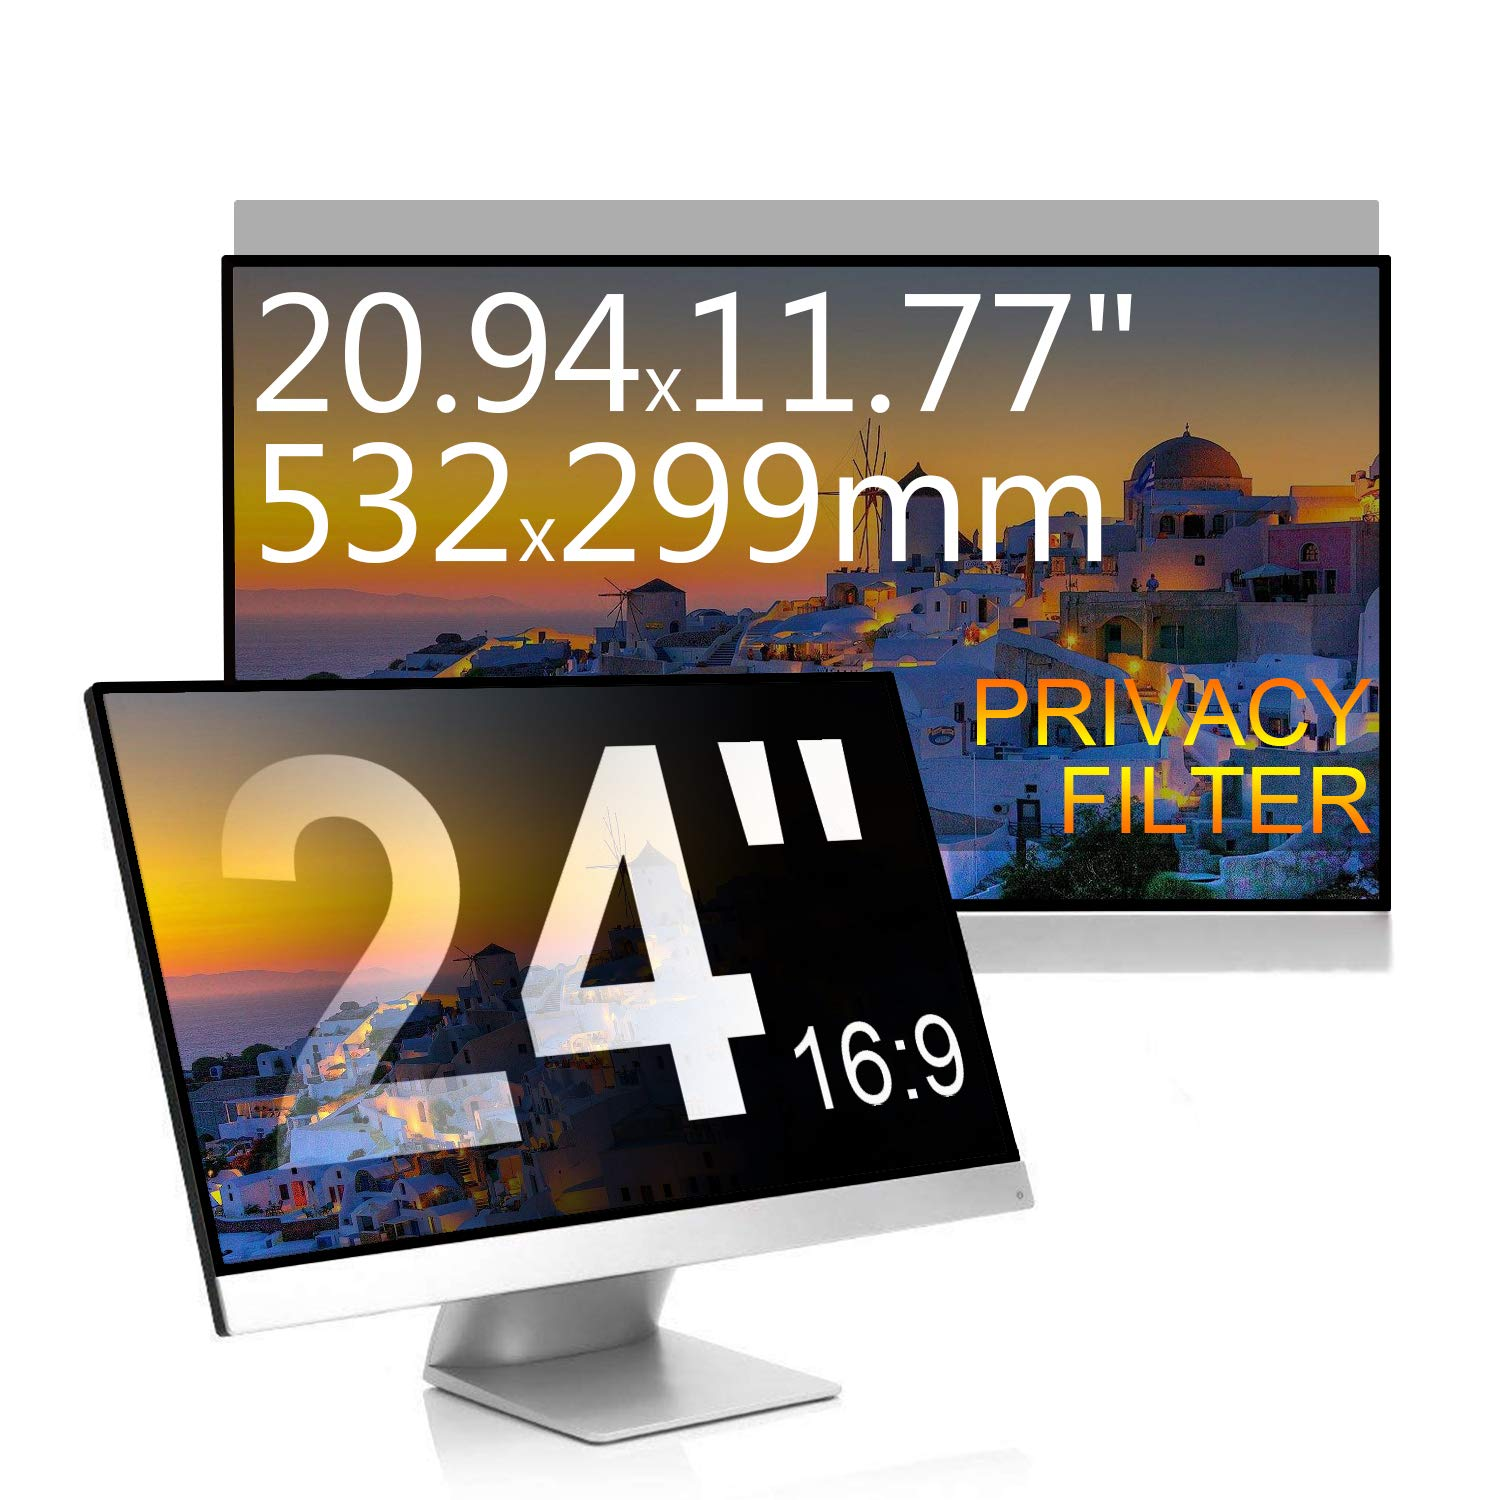 "24/"" inch 16:9 Privacy Screen Filters Screen Protectors 20.94x11.77inch//532x299mm"